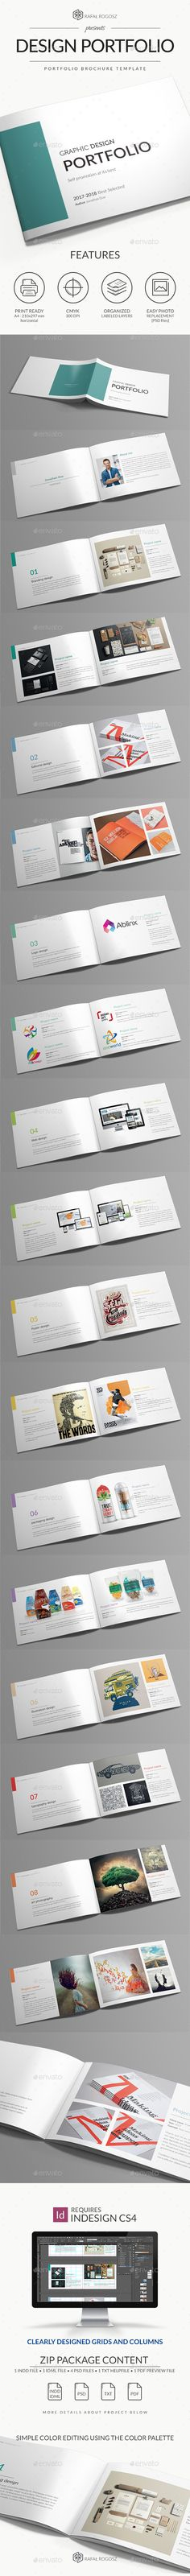 #Graphic Design Portfolio Brocure A4 - Portfolio #Brochures Download here:  https://graphicriver.net/item/graphic-design-portfolio-brocure-a4/20303211?ref=alena994